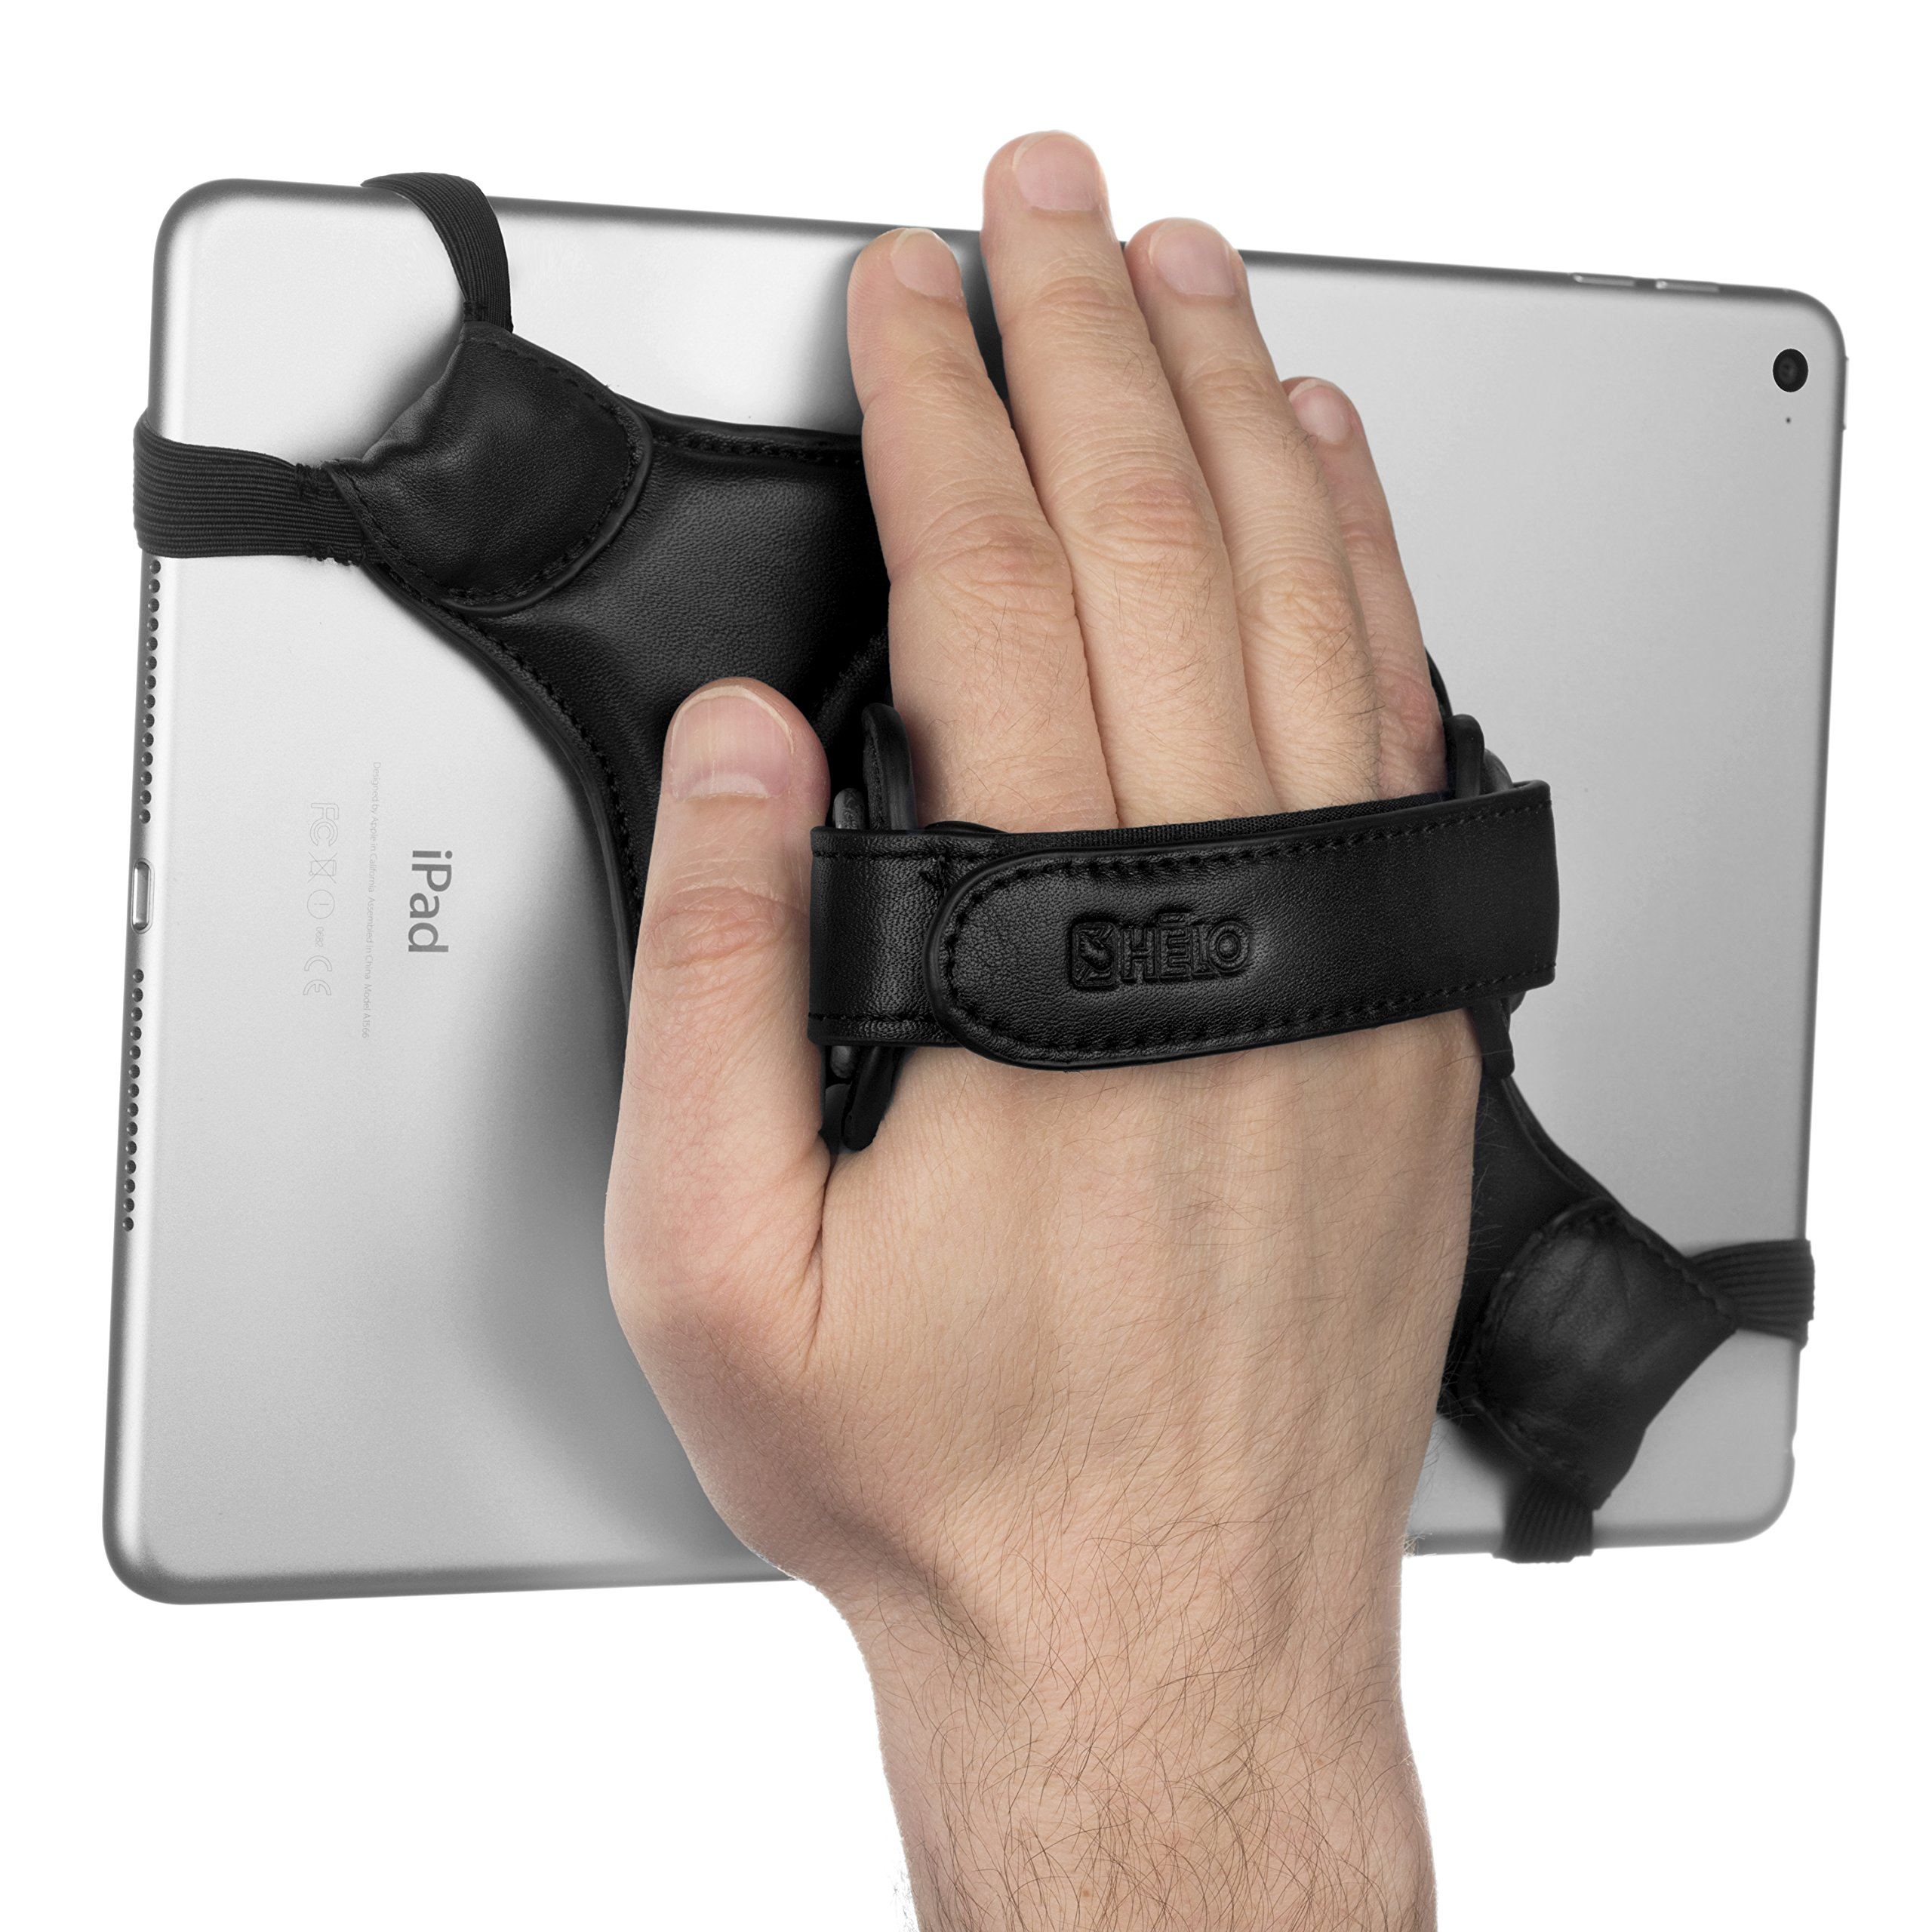 HELO Tabletstrap Pro | Leather 360 Degree Rotation Security Hand Holder Strap for Android and iPad Full Sized Tablets | Extra Loop Sets to Customize Fit with Case or Alone